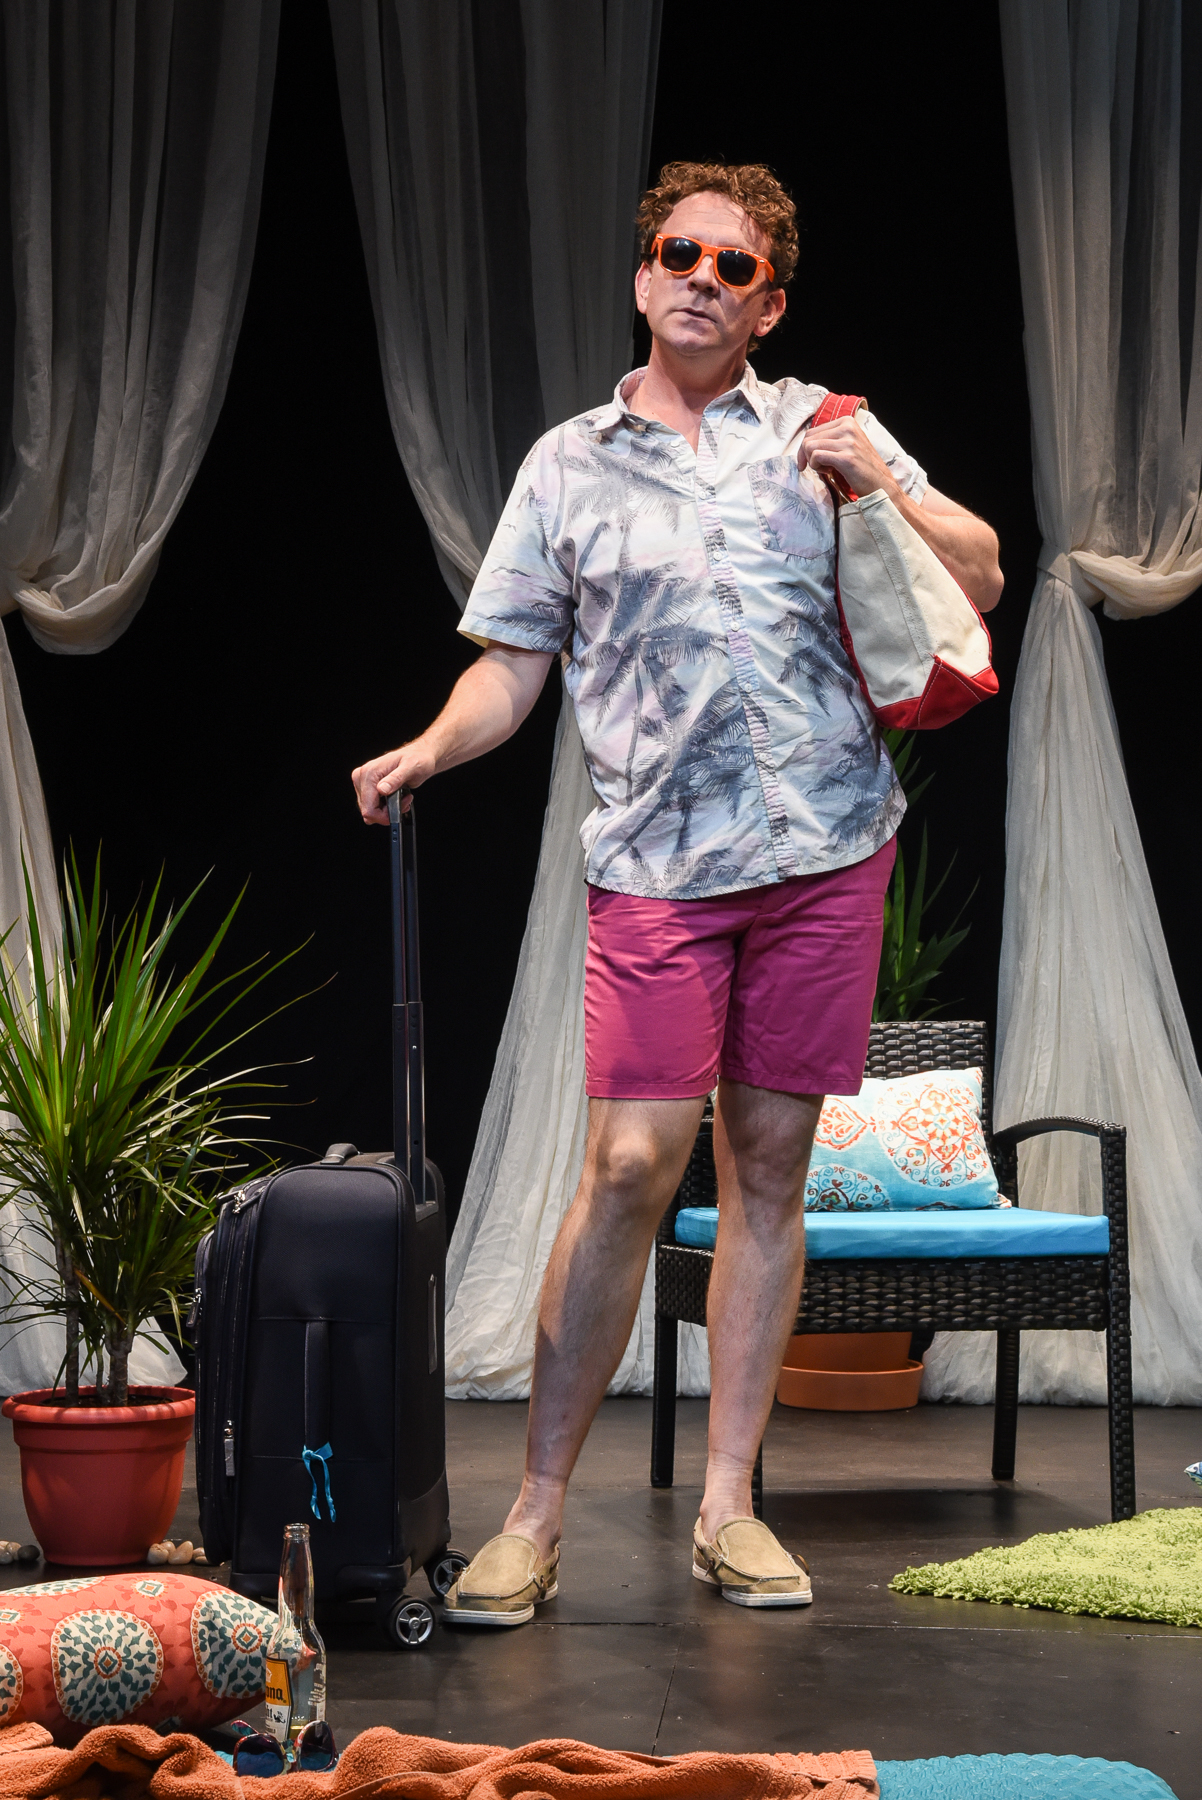 Bright Colors And Bold Patterns,  Actor-Playright Drew Droege, photo by Russ Rowland.jpg